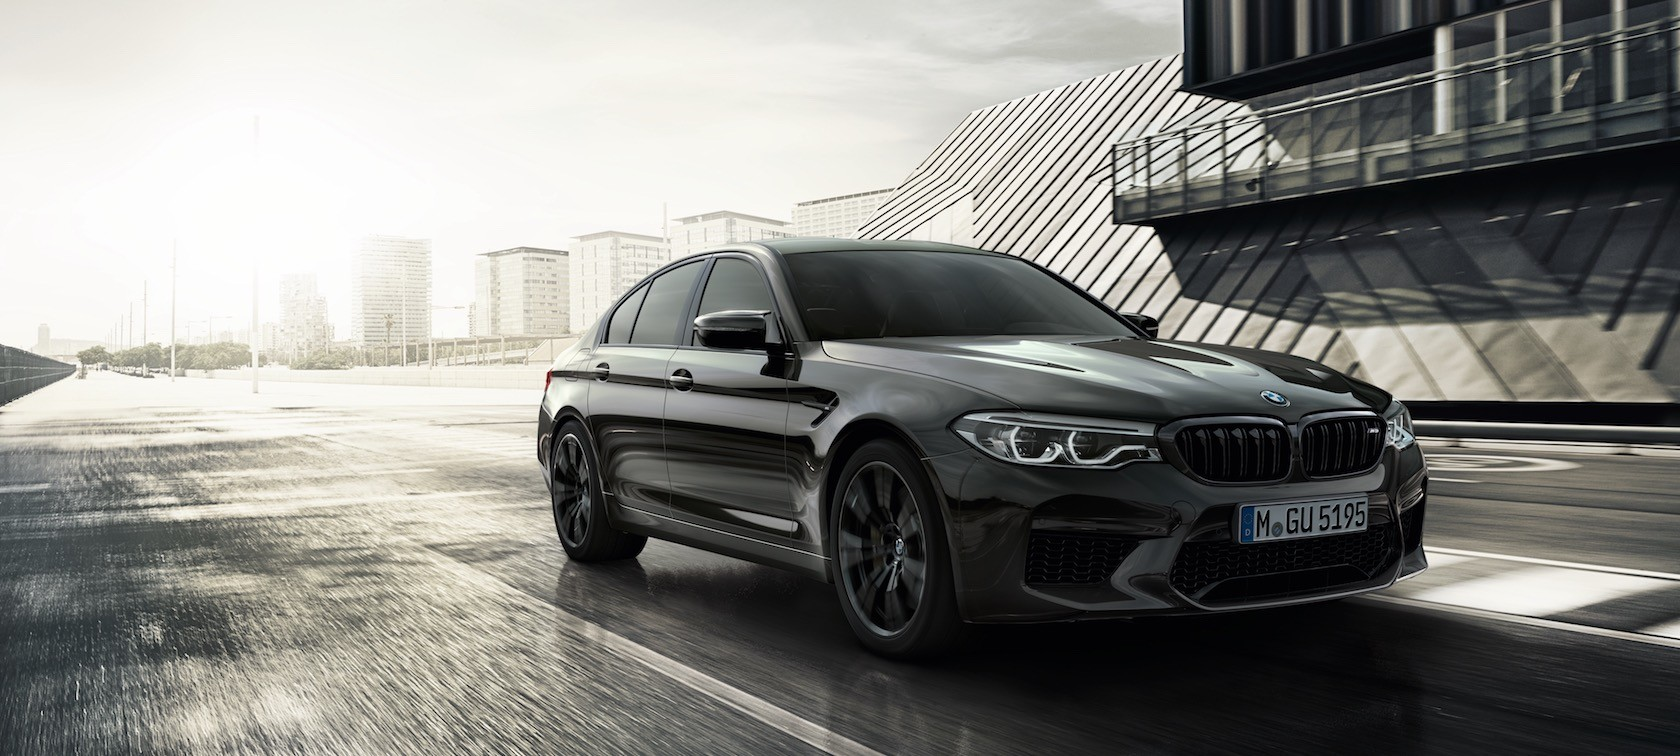 BMW M5 Mission Impossible